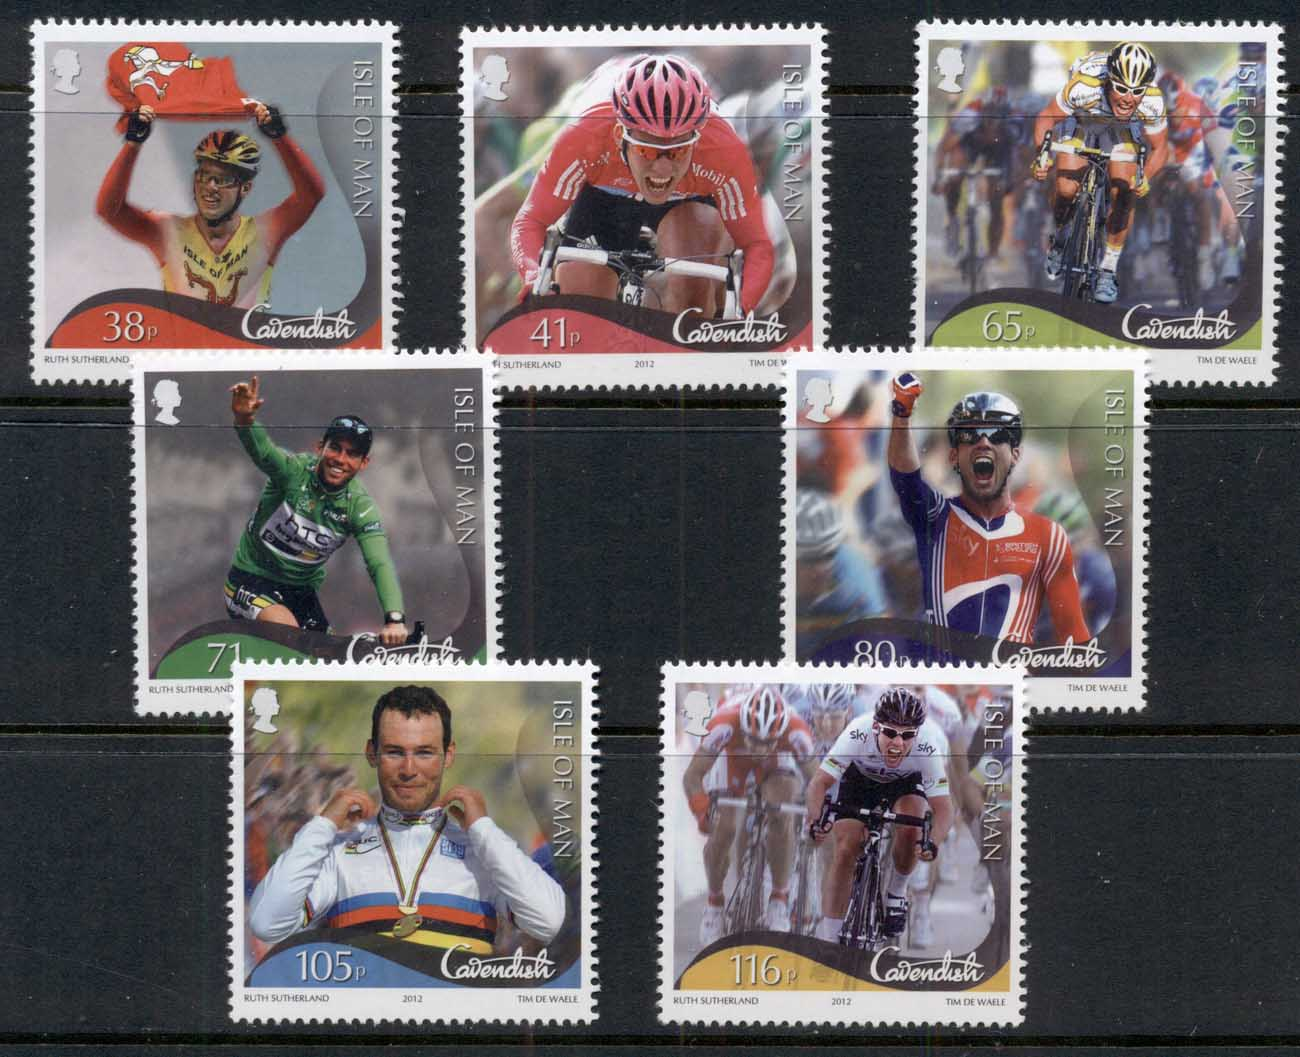 Isle of Man 2012 Mark Cavendish Cycling Victories MUH